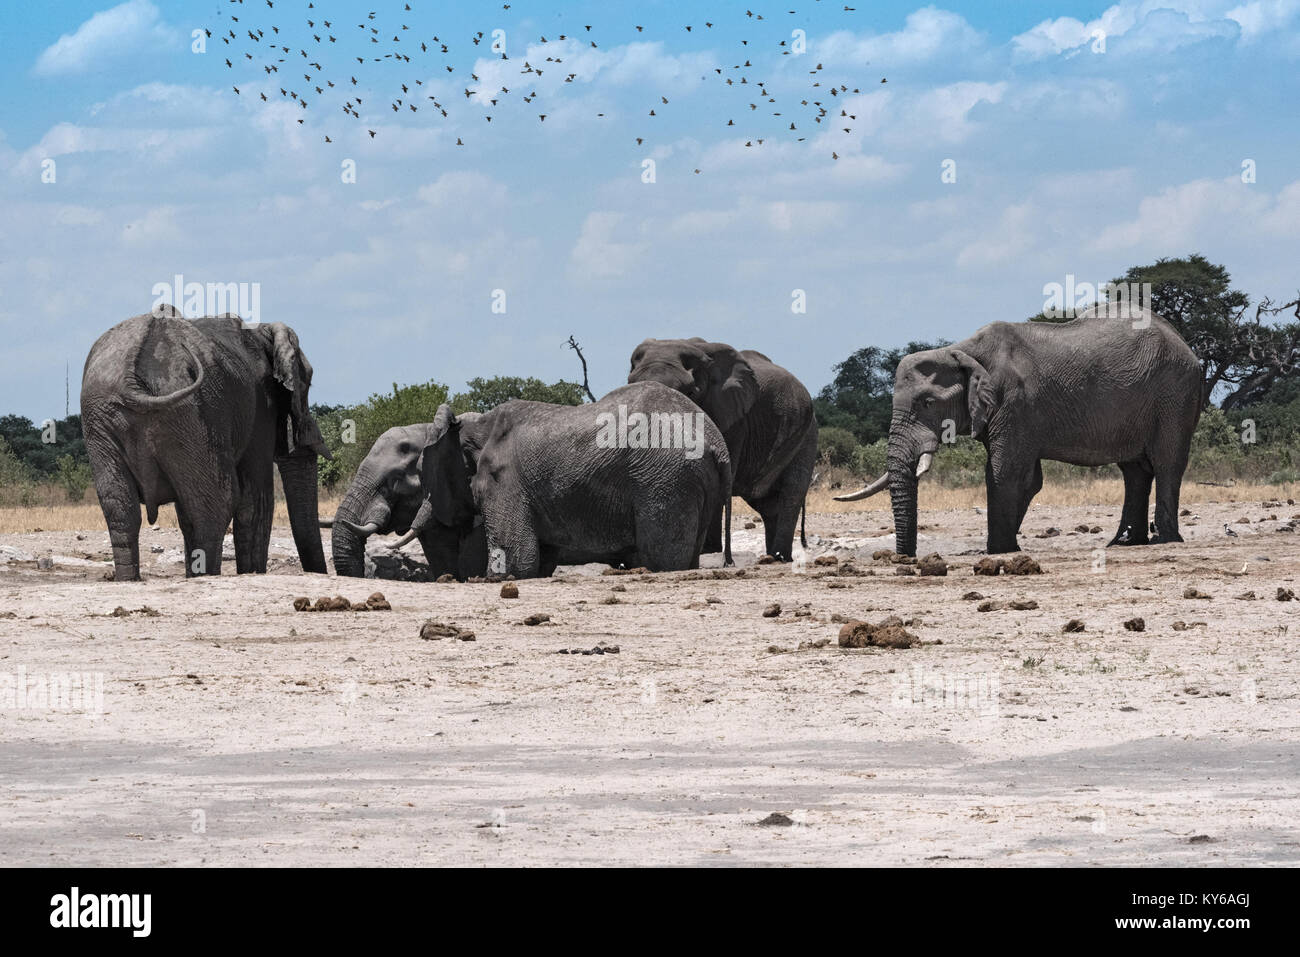 Elephant group at a waterhole in Chope National Park in Botswana Stock Photo